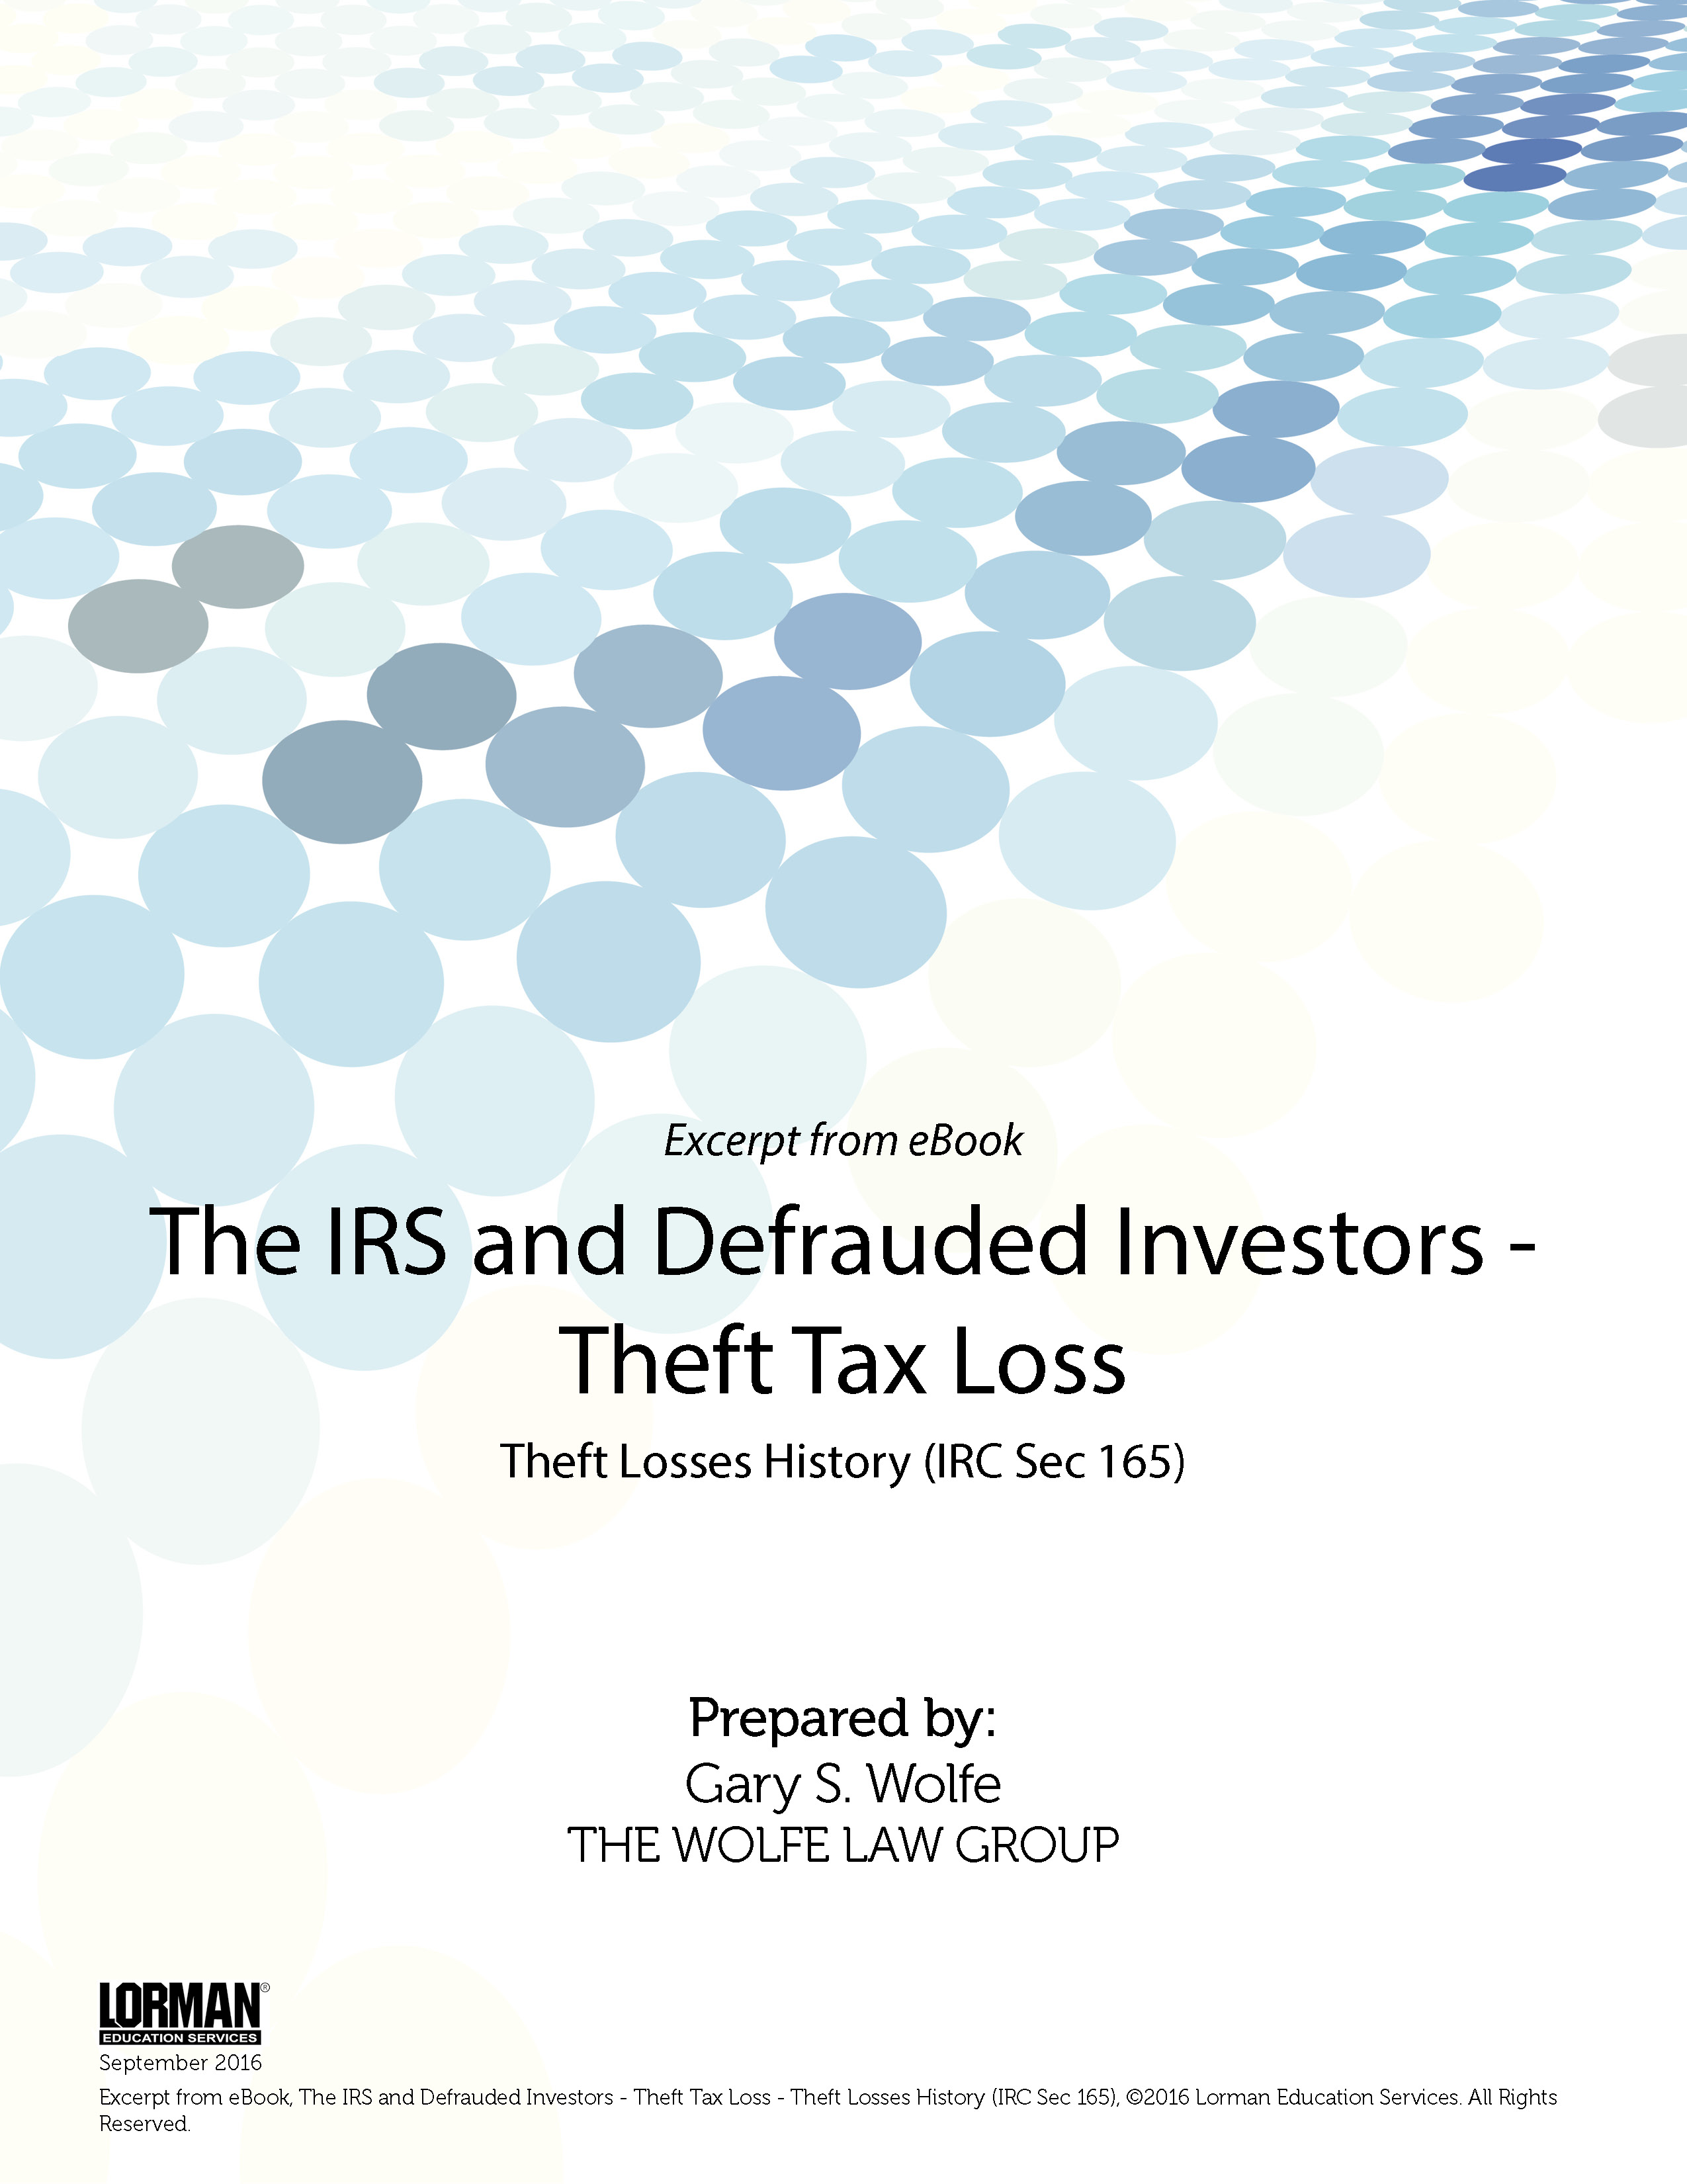 The IRS and Defrauded Investors: Theft Tax Loss - Theft Losses History (IRC Sec 165)